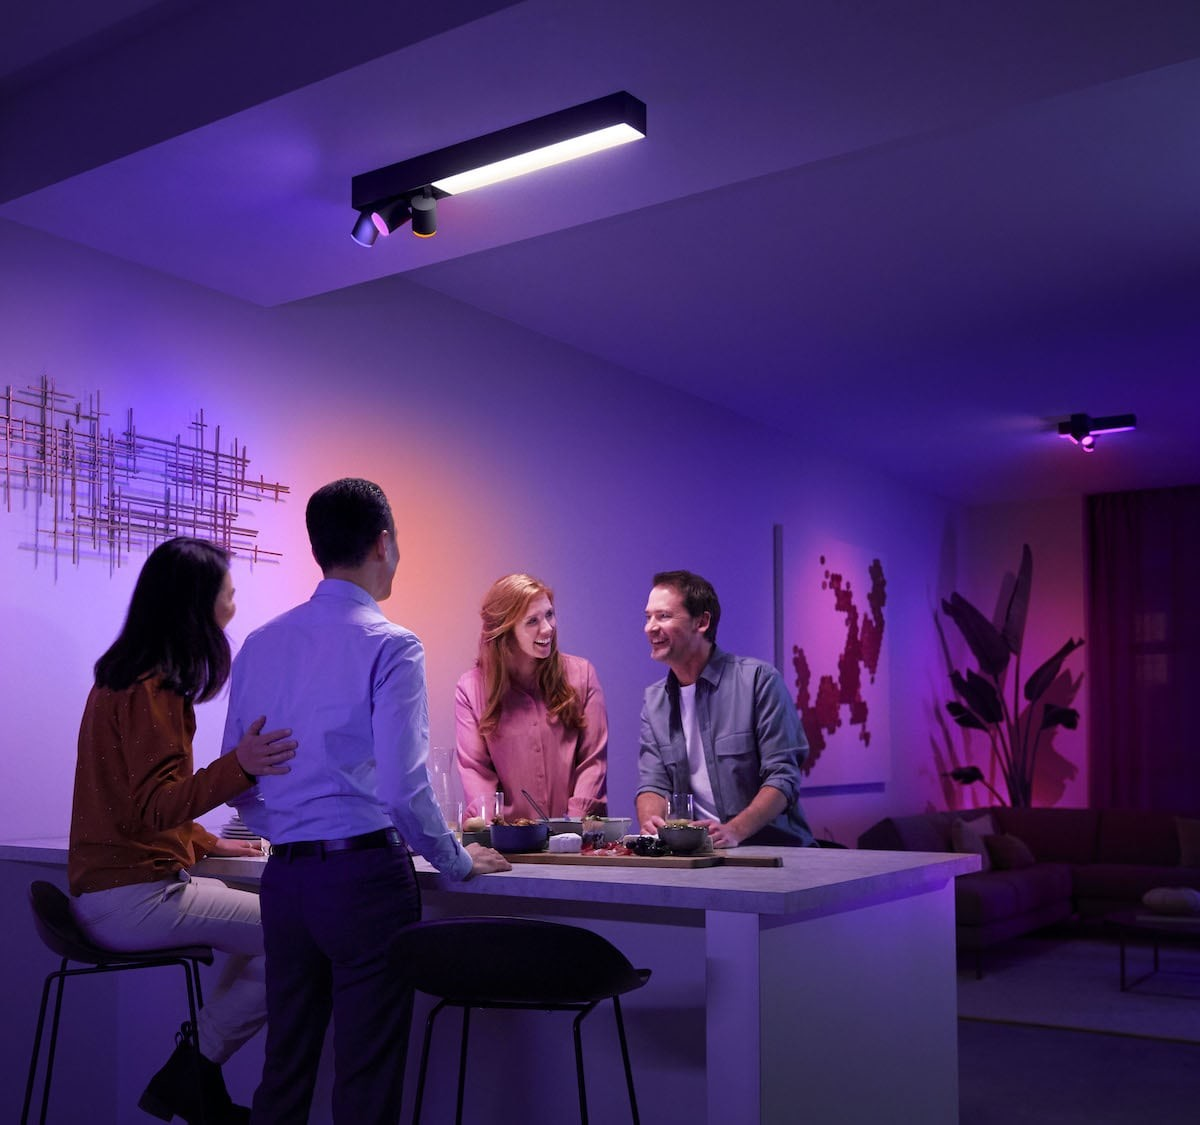 Philips Hue Centris Smart Ceiling Spotlight lets you set just the right mood